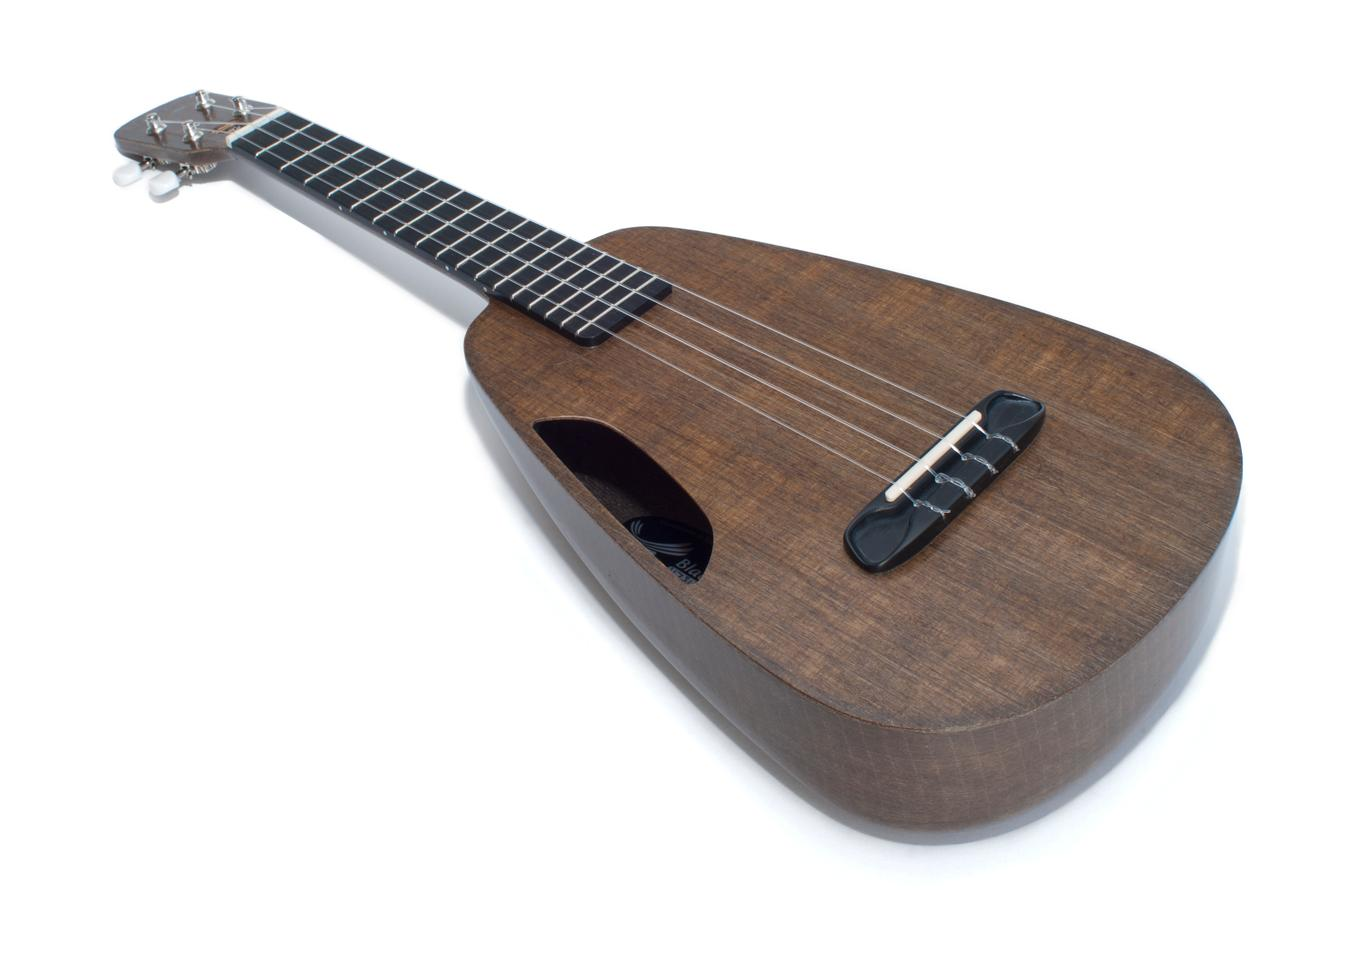 The Clara ukulele from Blackbird Guitars